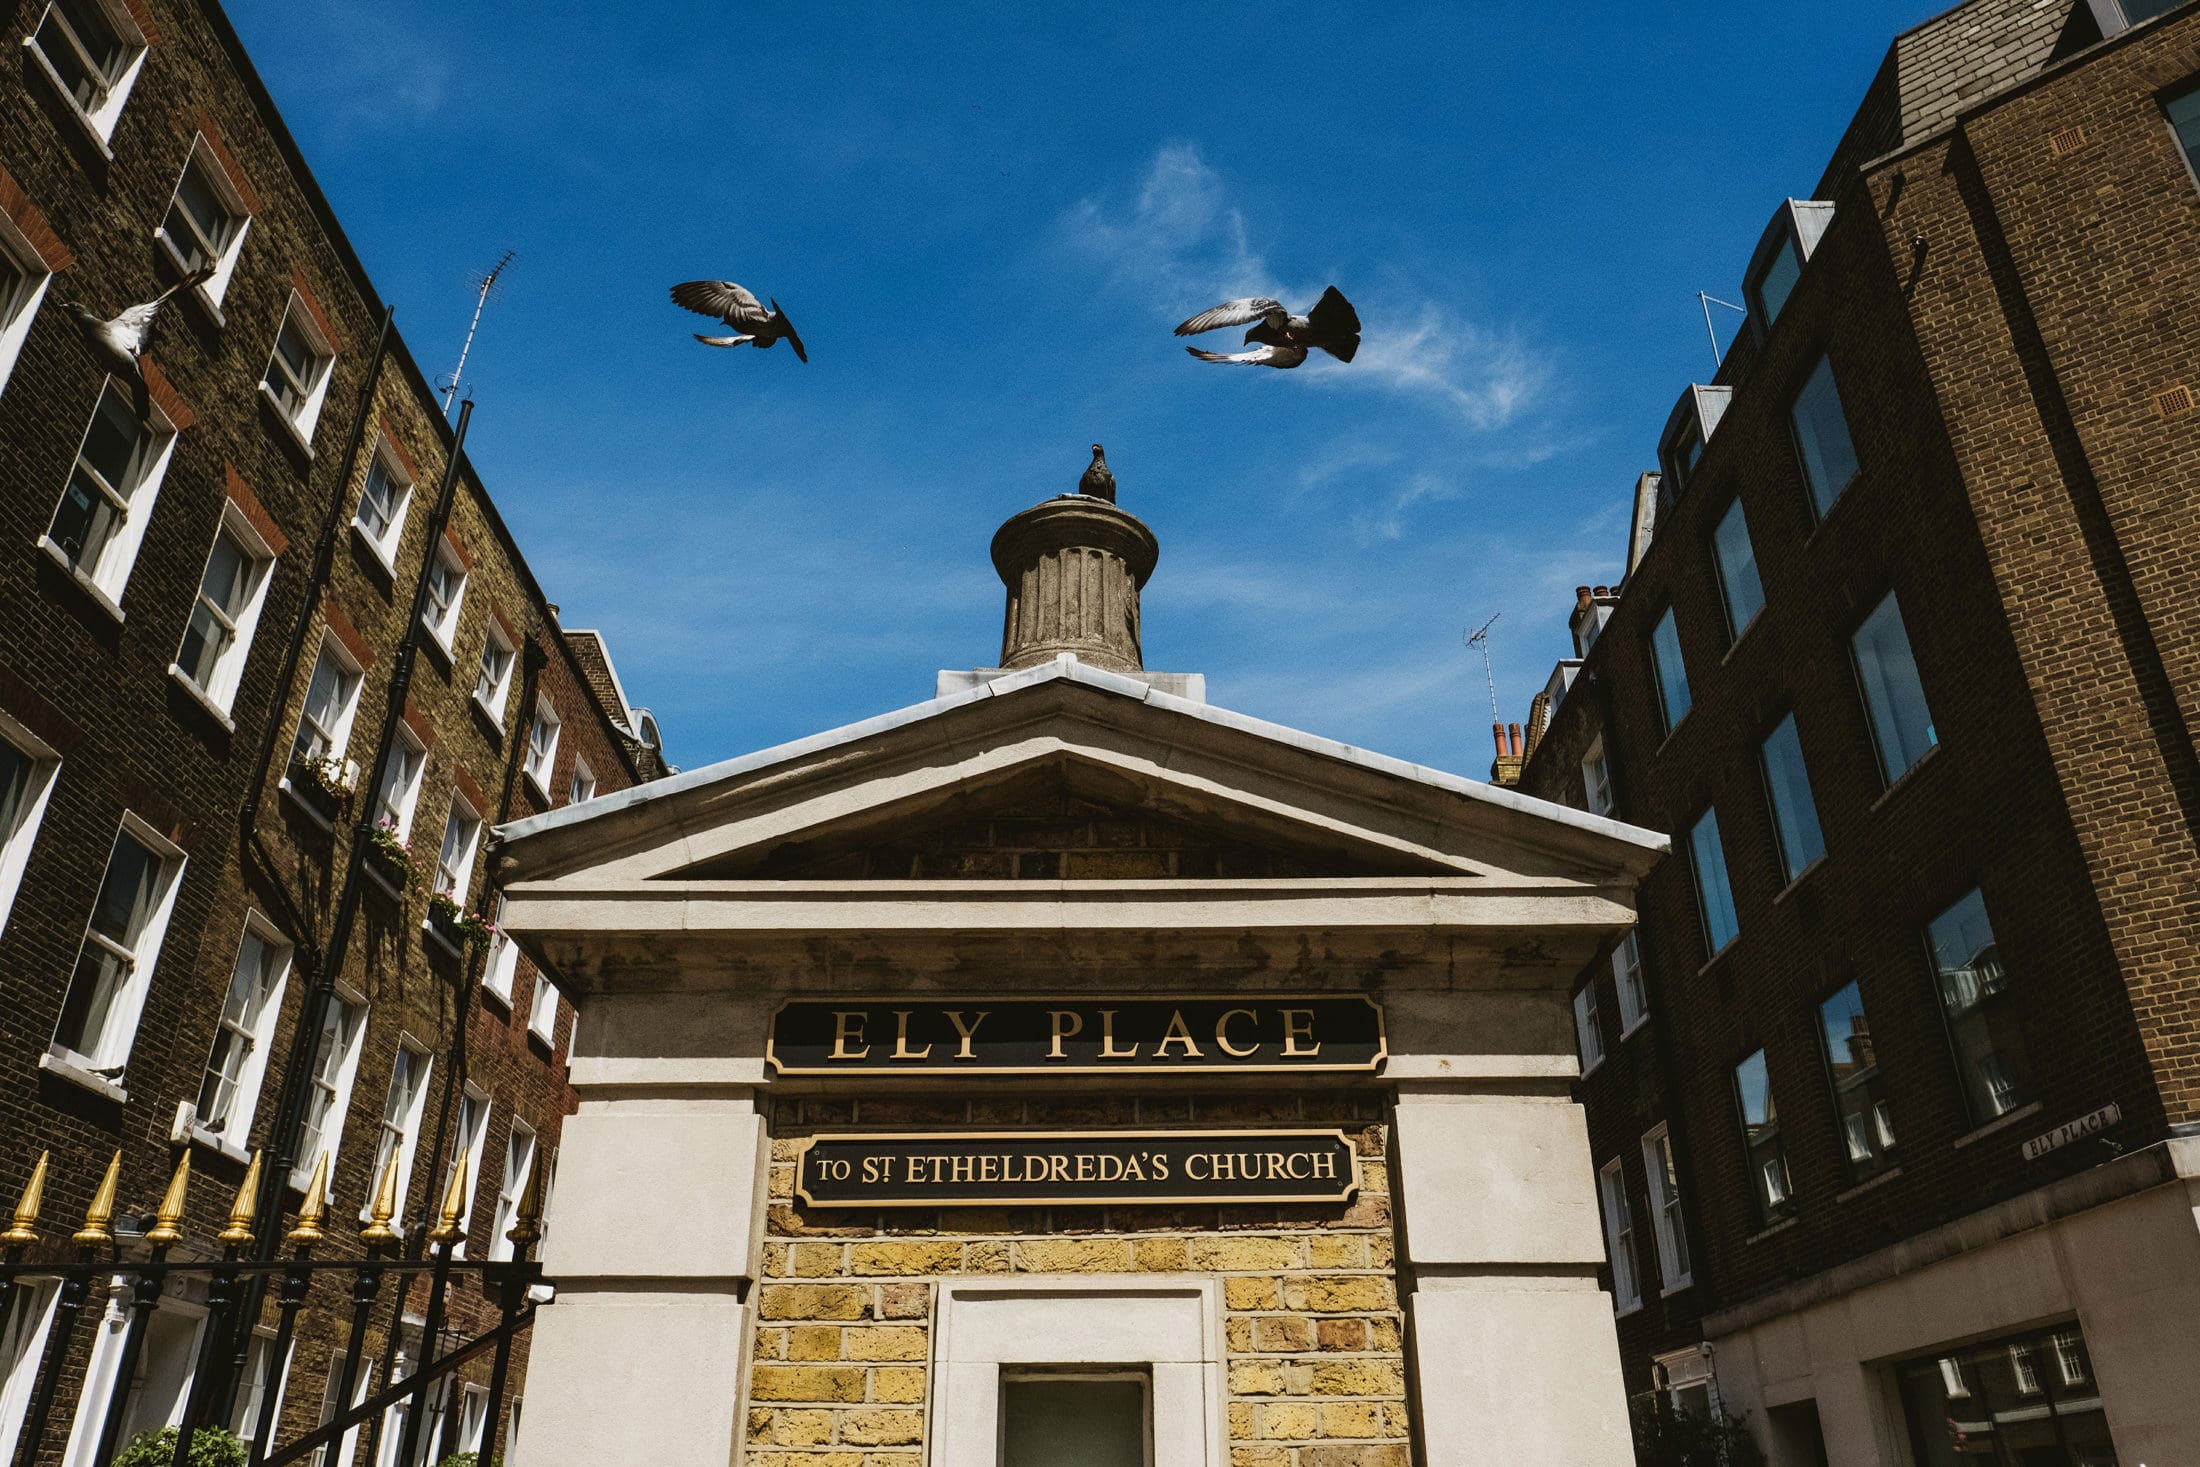 Birds fly over the entrance gate to St Etherelda's Church in London